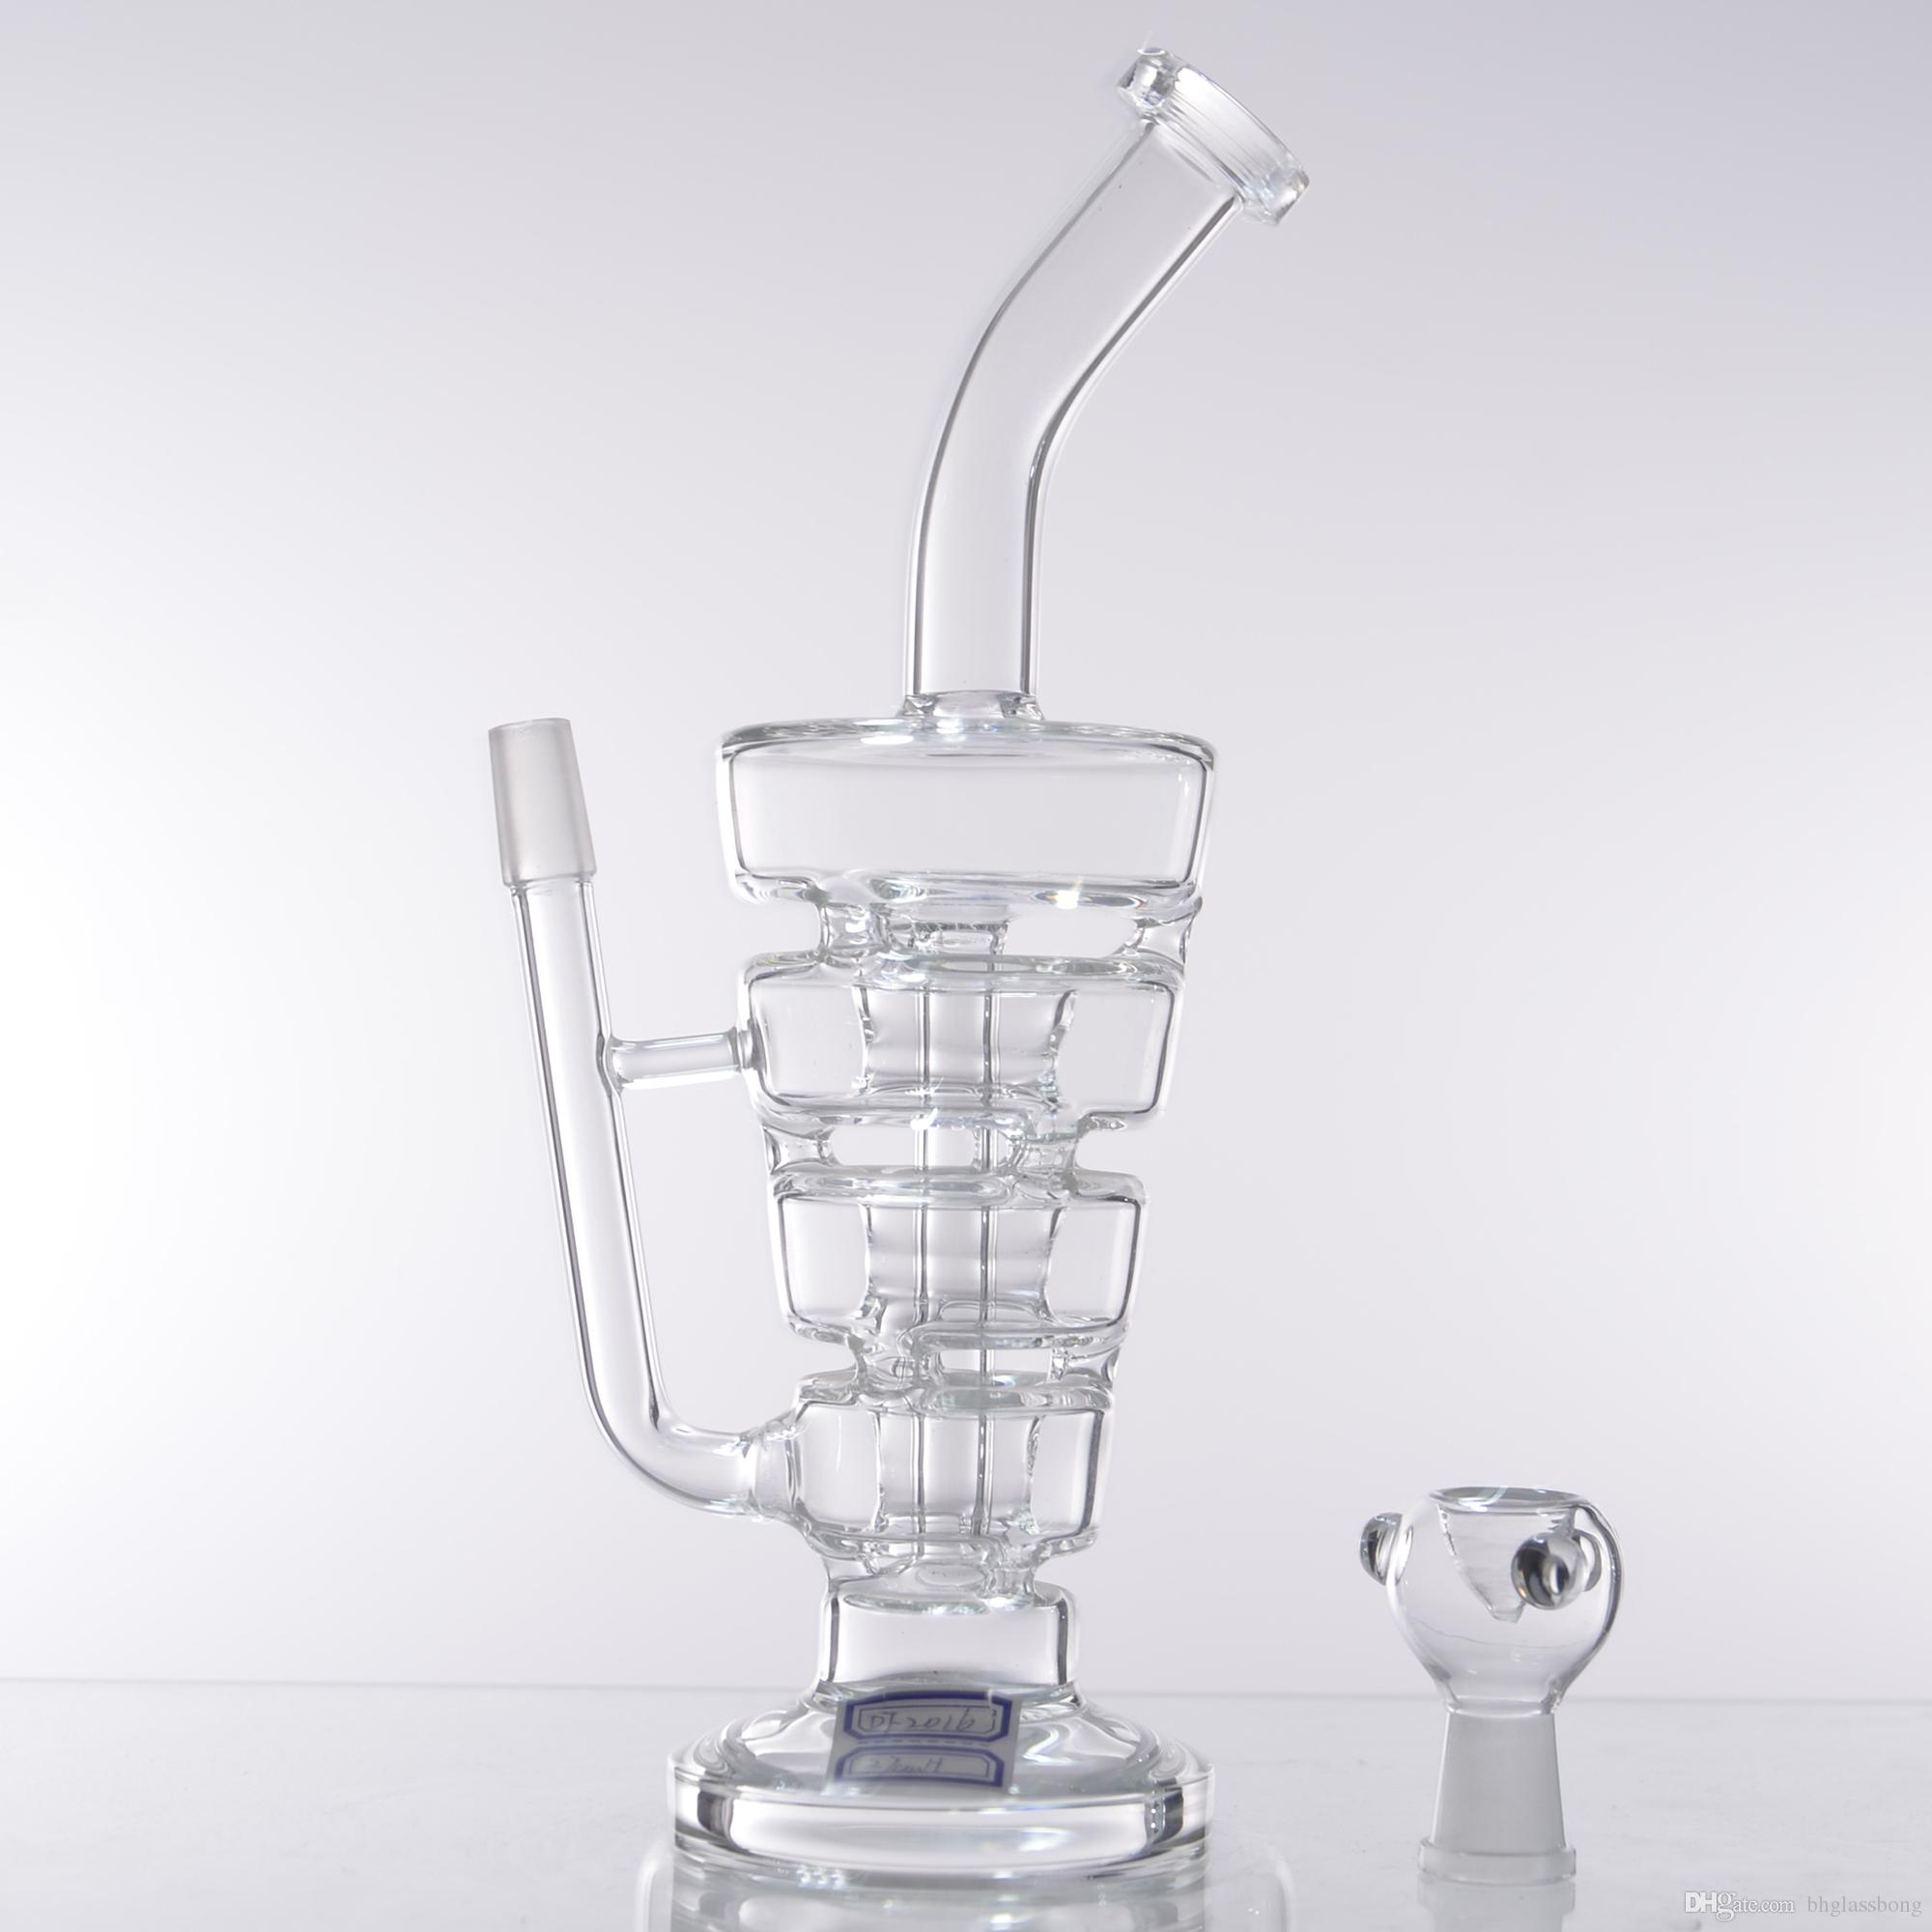 transparency 10.5 inch Glass bong oil rigs water pipes thick and sturdy glass with 14.5mm male joint